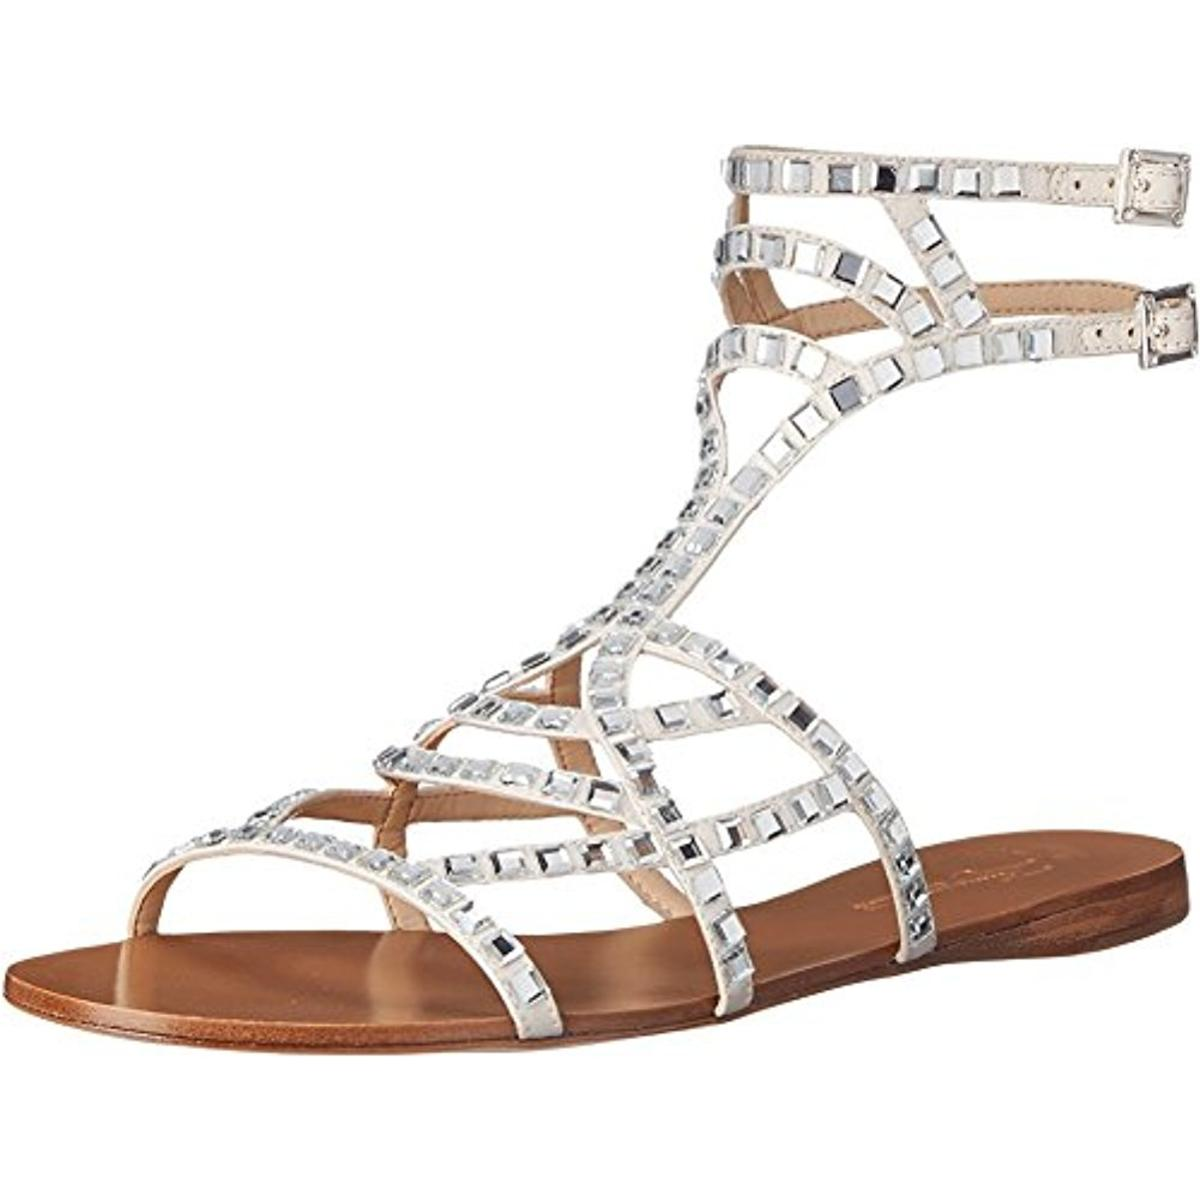 Vince Camuto 7108 Womens Ryan Ankle Strap Studded